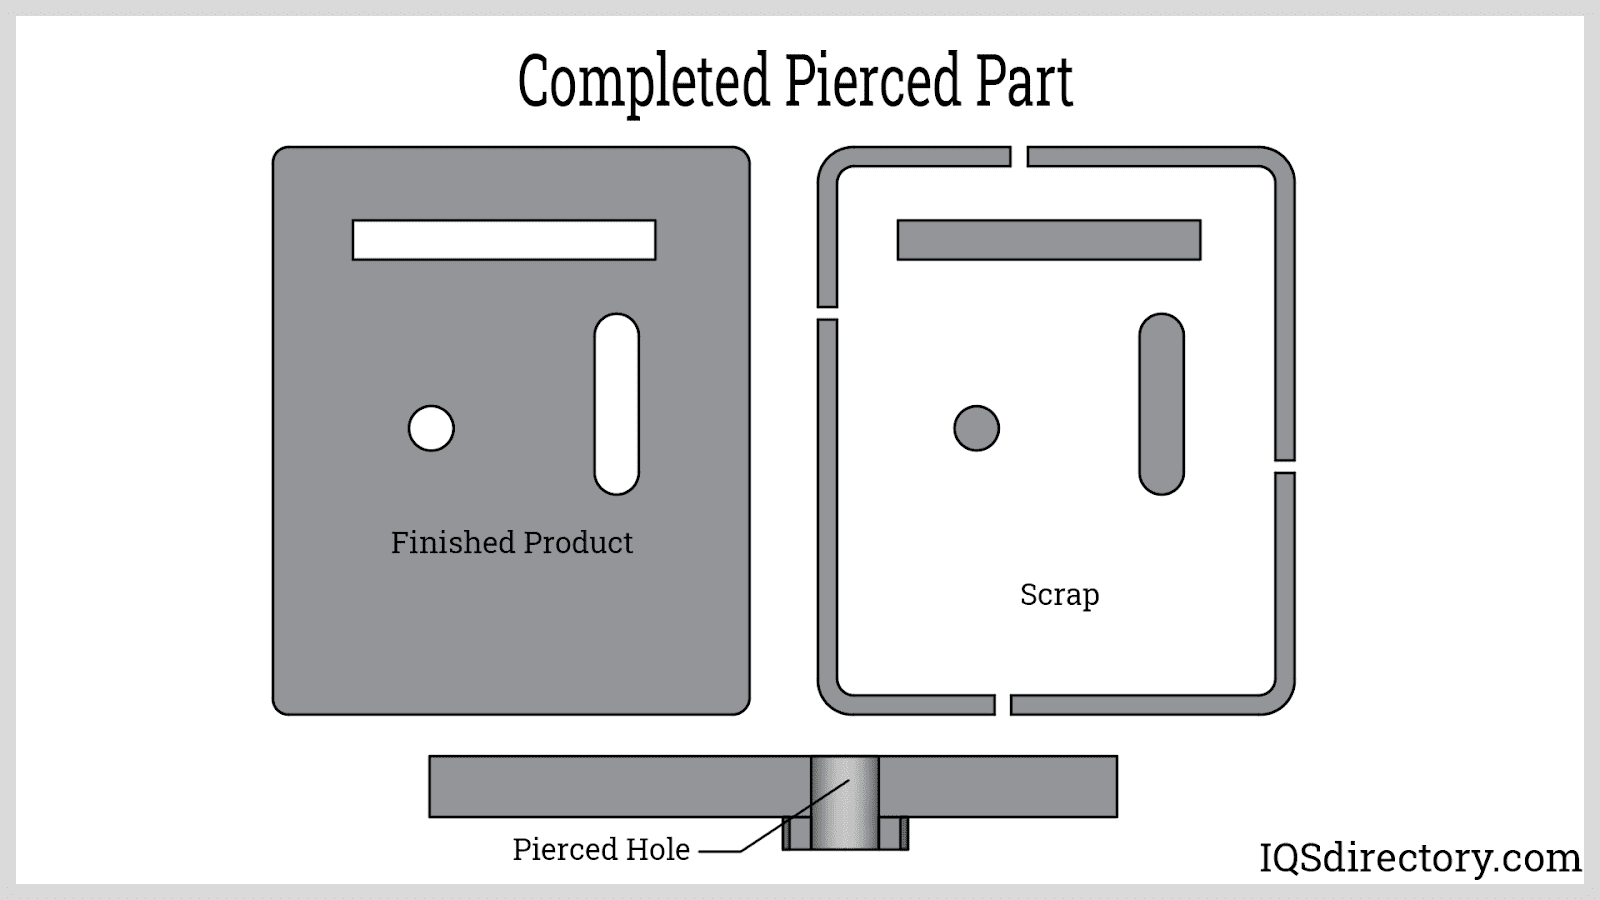 Completed Pierced Part